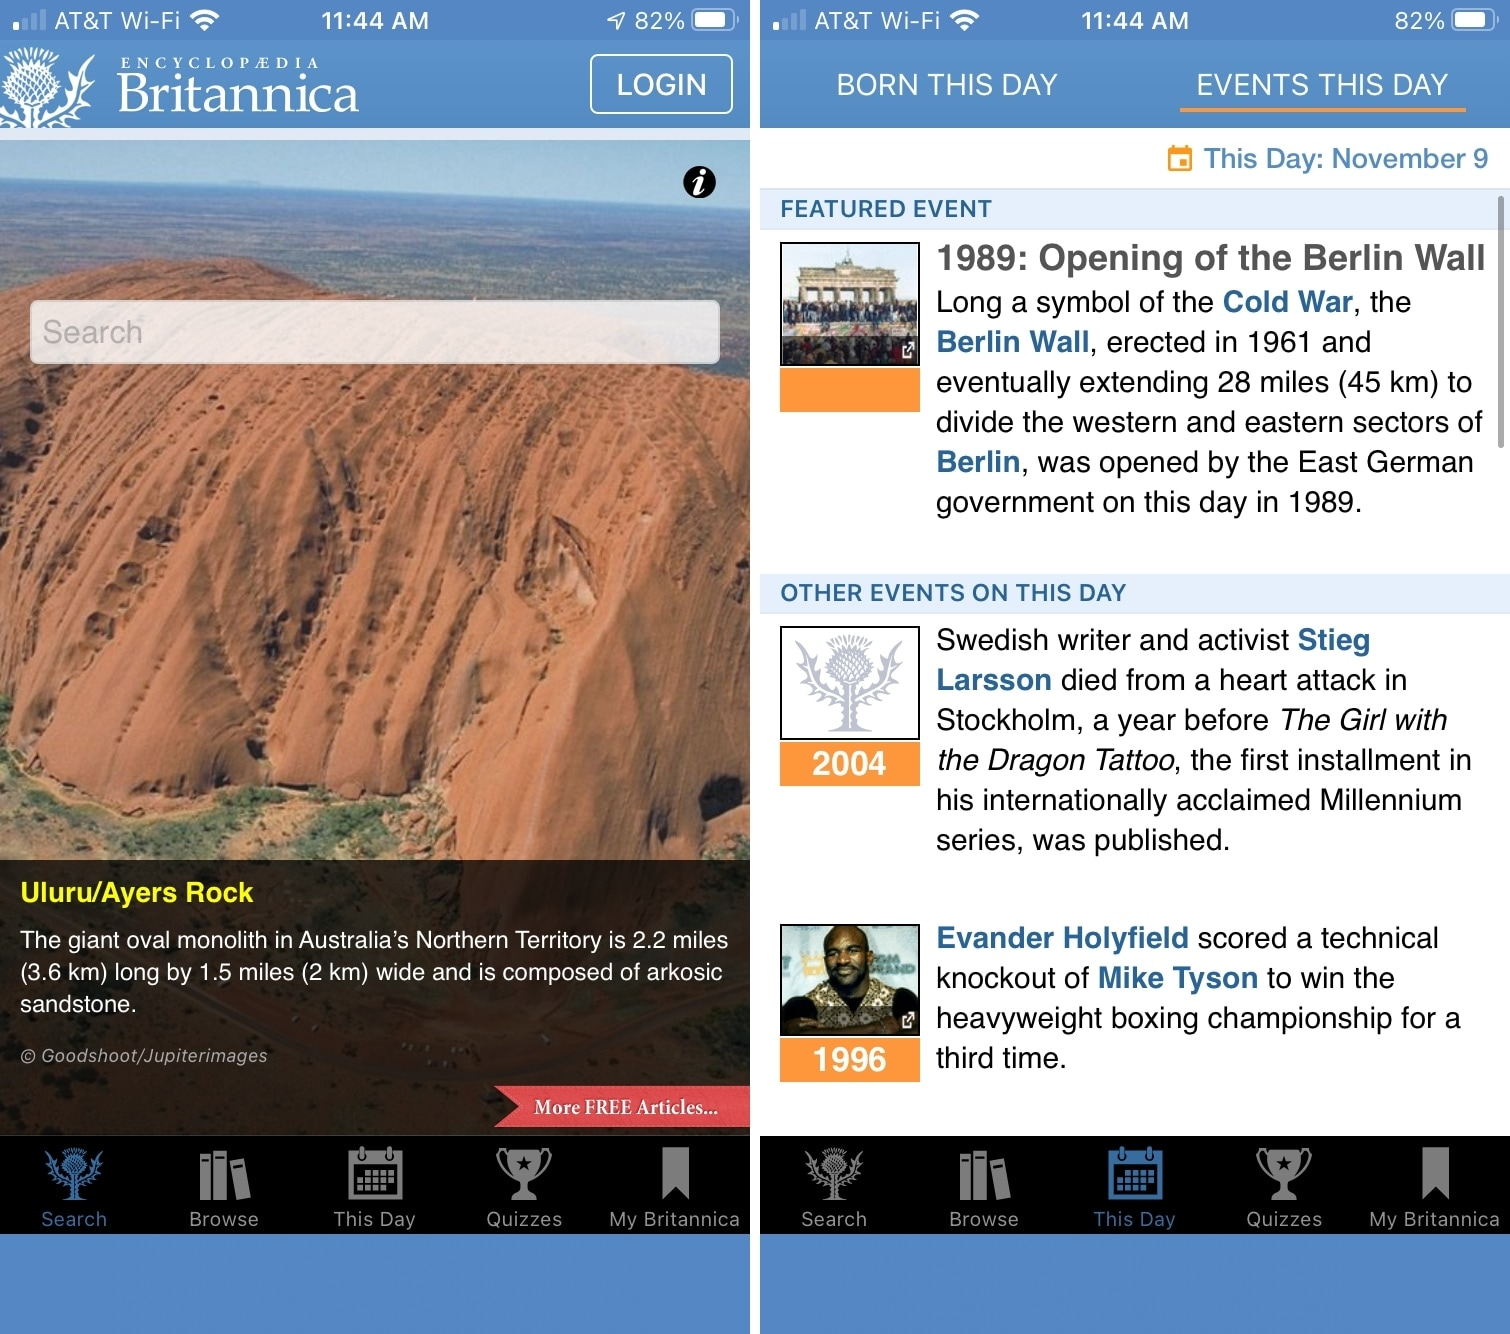 Britannica Encyclopedia On This Day on iPhone